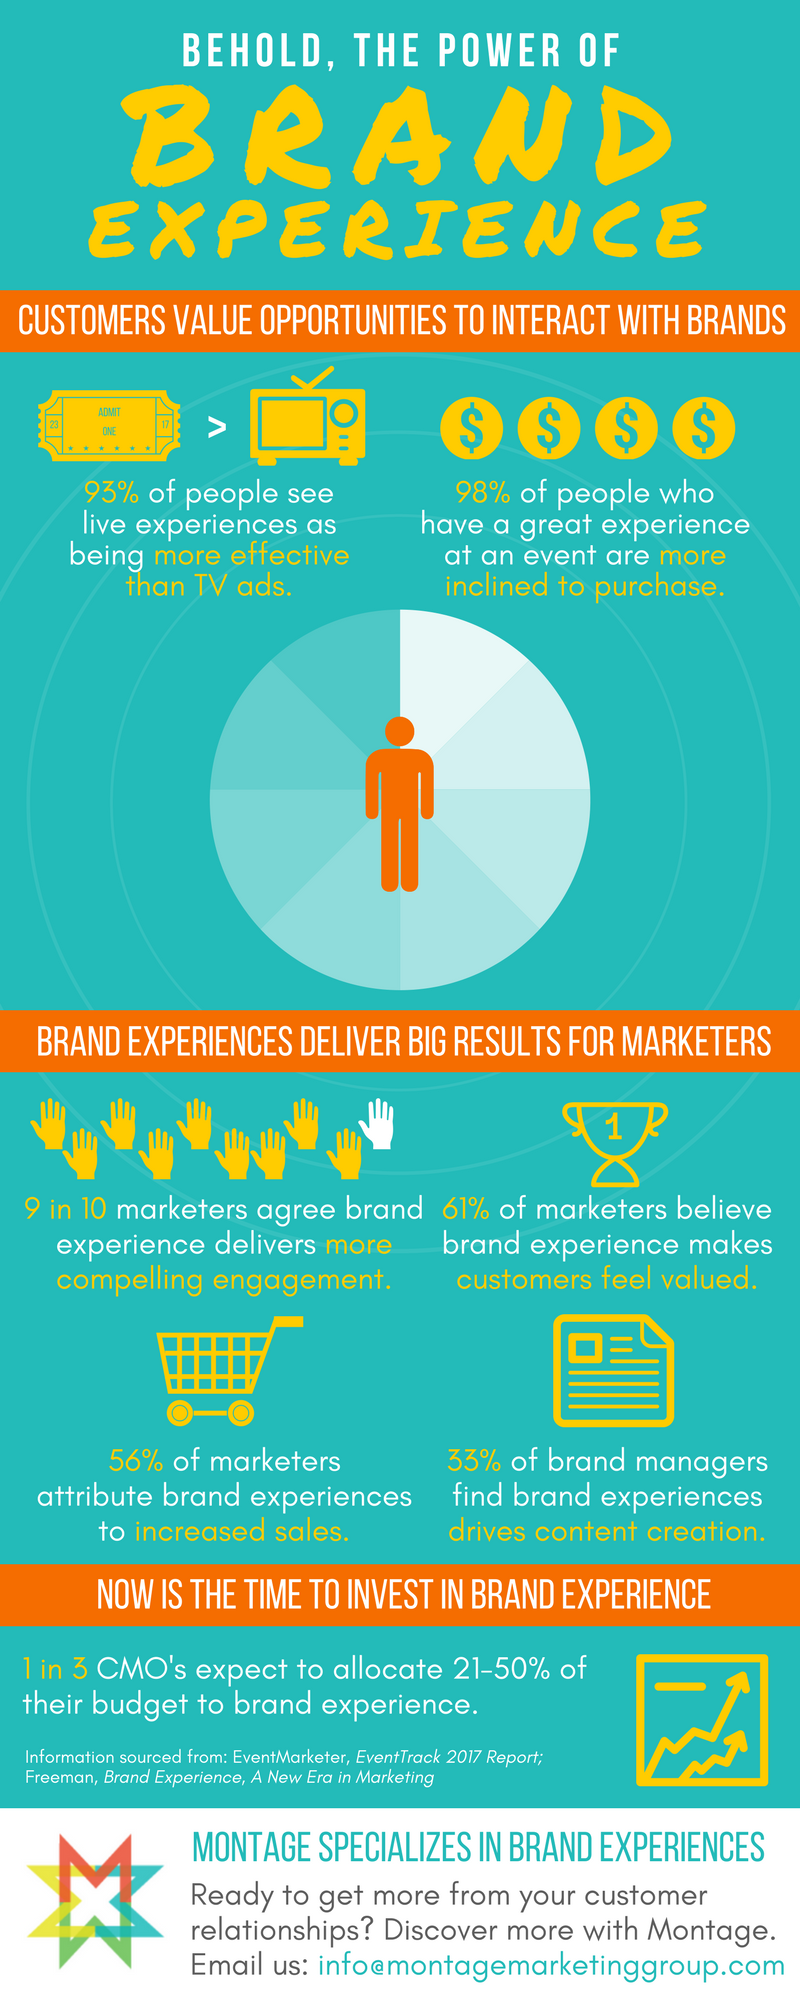 We used Canva to design our latest infographic.